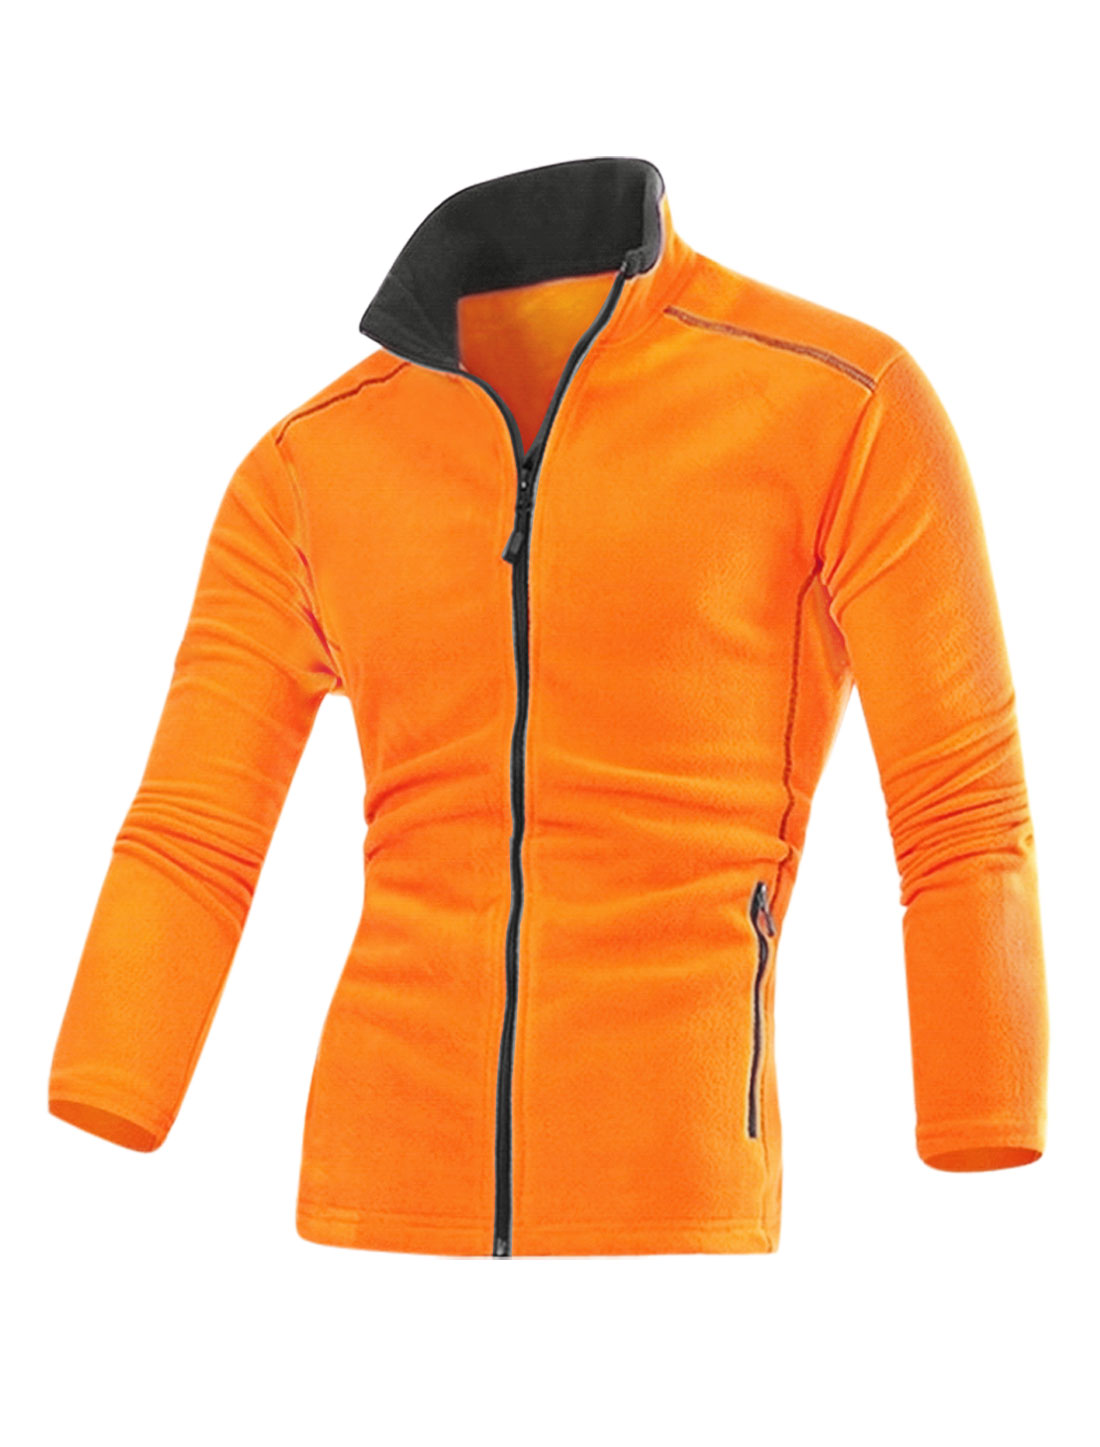 Men Long Sleeves Zip Up Stand Collar Slant Pockets Fleece Jacket Orange M